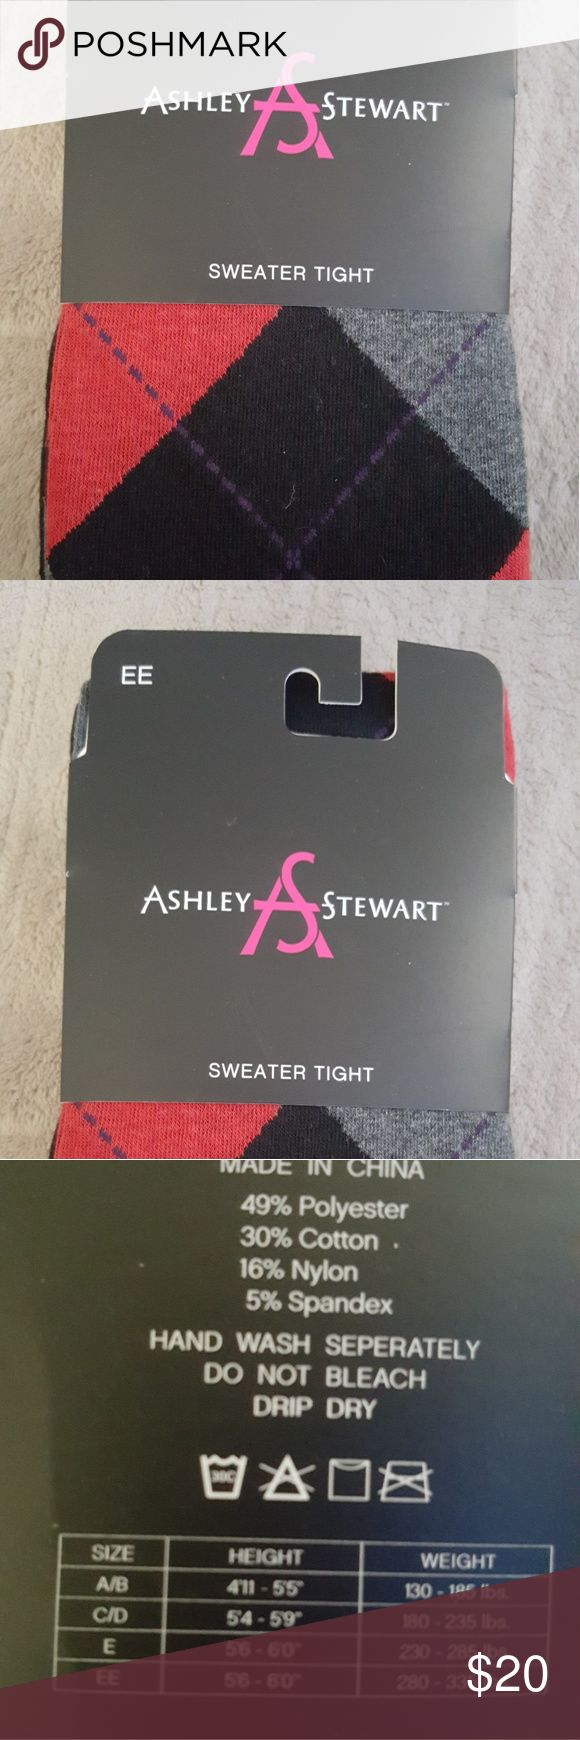 Plus size Argyle Sweater Tights NWOT!! Red and Black Sweater tights. Never worn. Please see the size chart. Ashley Stewart Accessories Hosiery & Socks